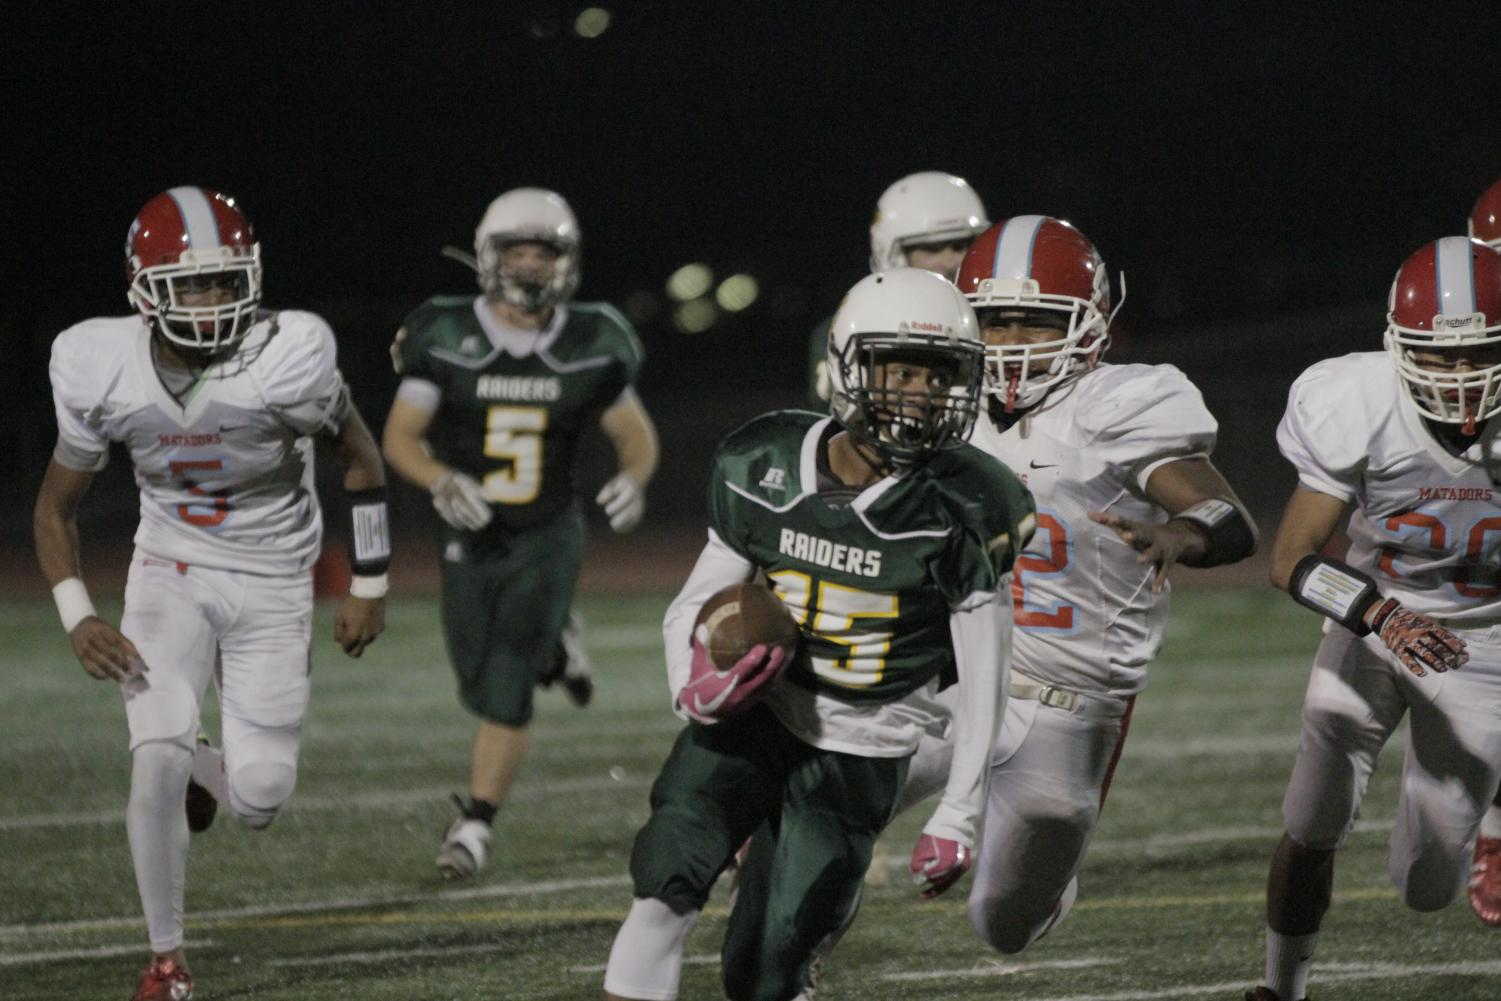 Sophomore Savion Ponce carries the football in a game against Mira Loma on Oct. 27.